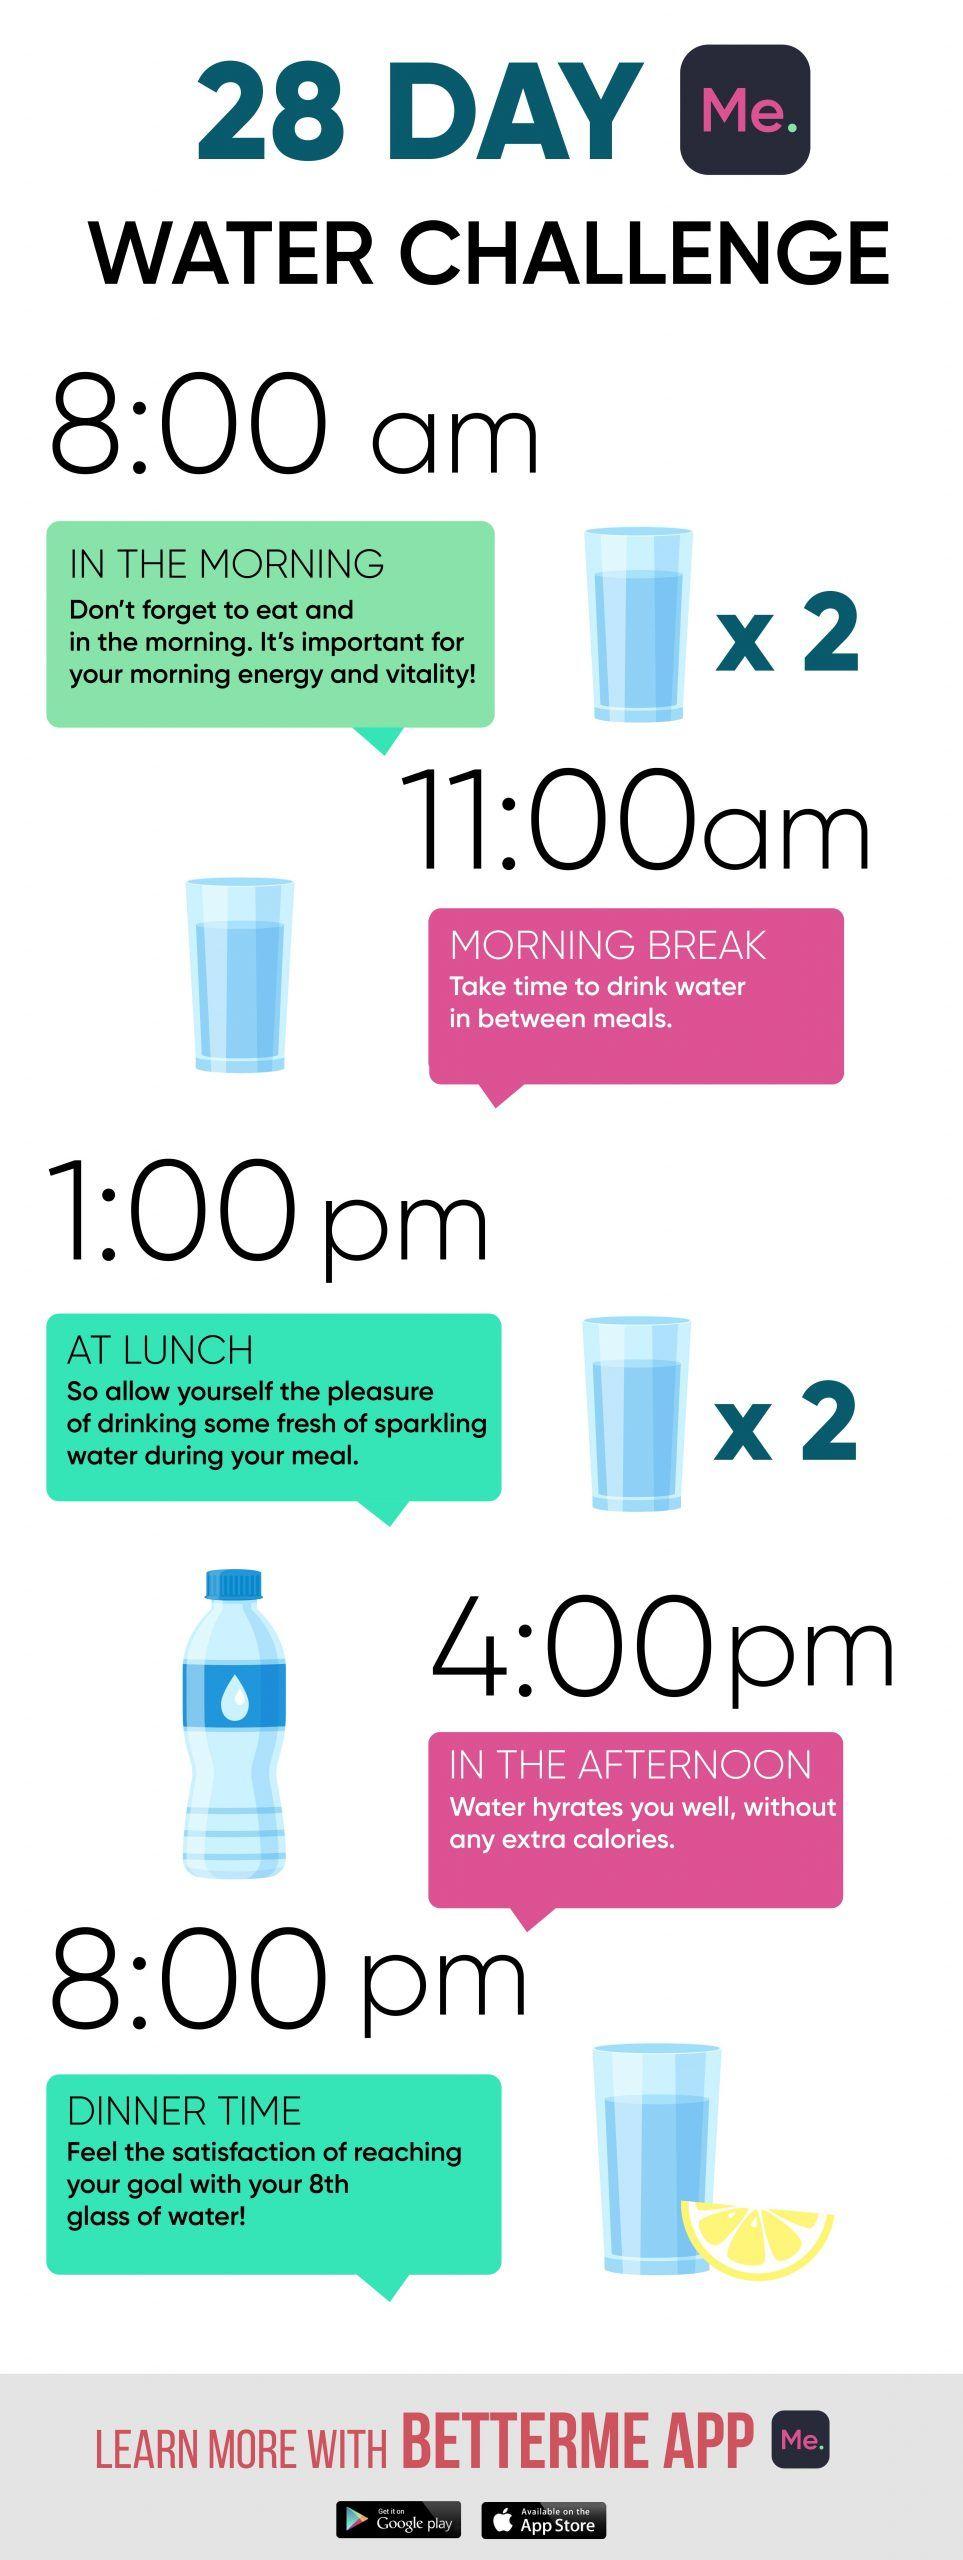 How to start a 28 day water challenge the rules in 2020